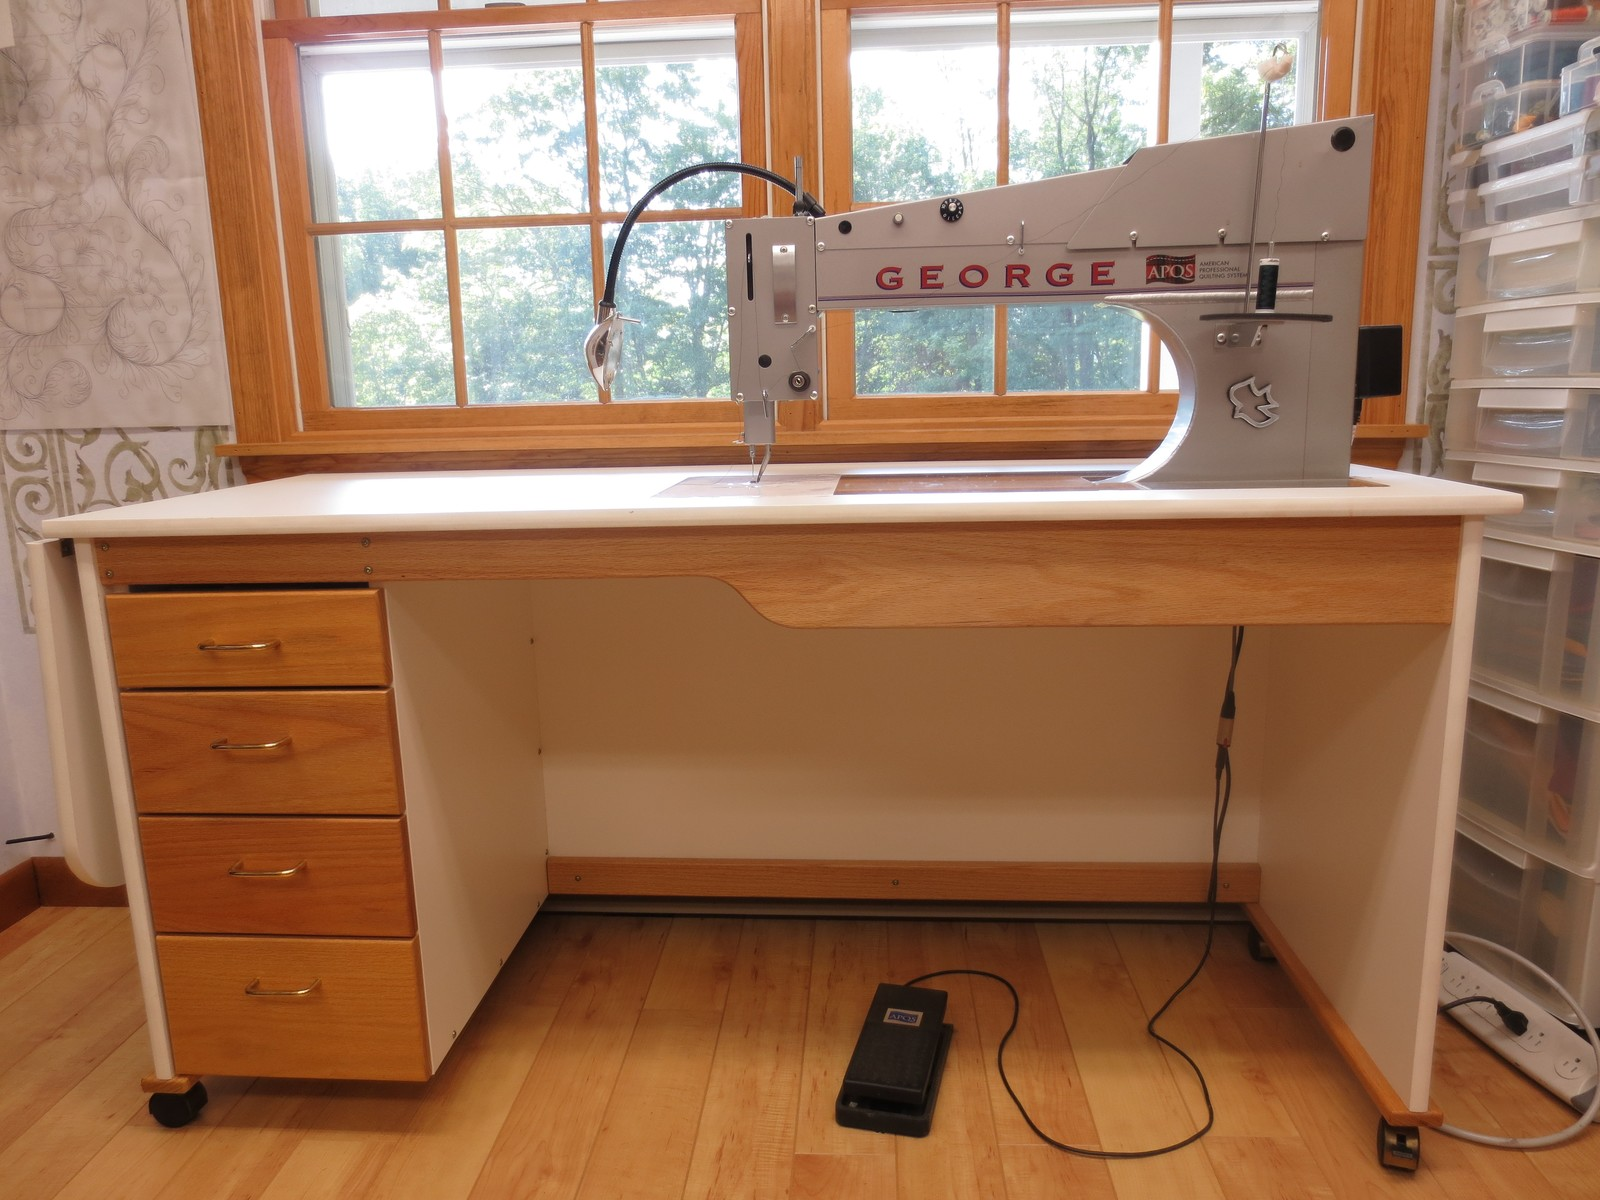 George Quilting Machine For Sale - For Sale - Used Quilting ... : quilting machines for sale - Adamdwight.com